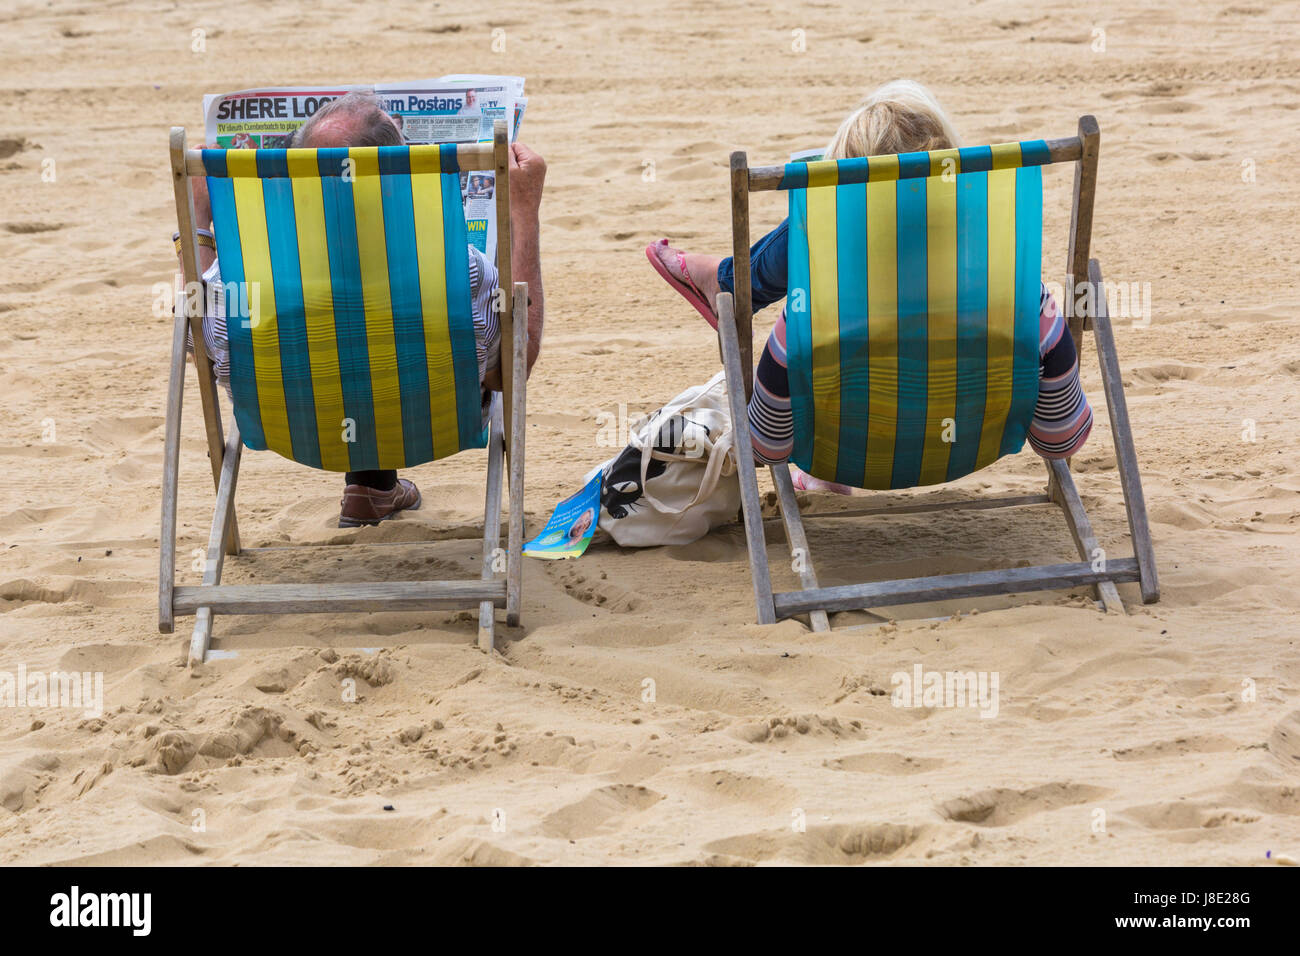 Bournemouth, Dorset, UK. 28th May, 2017. UK weather: overcast day at Bournemouth beaches, but the sun is trying - Stock Image